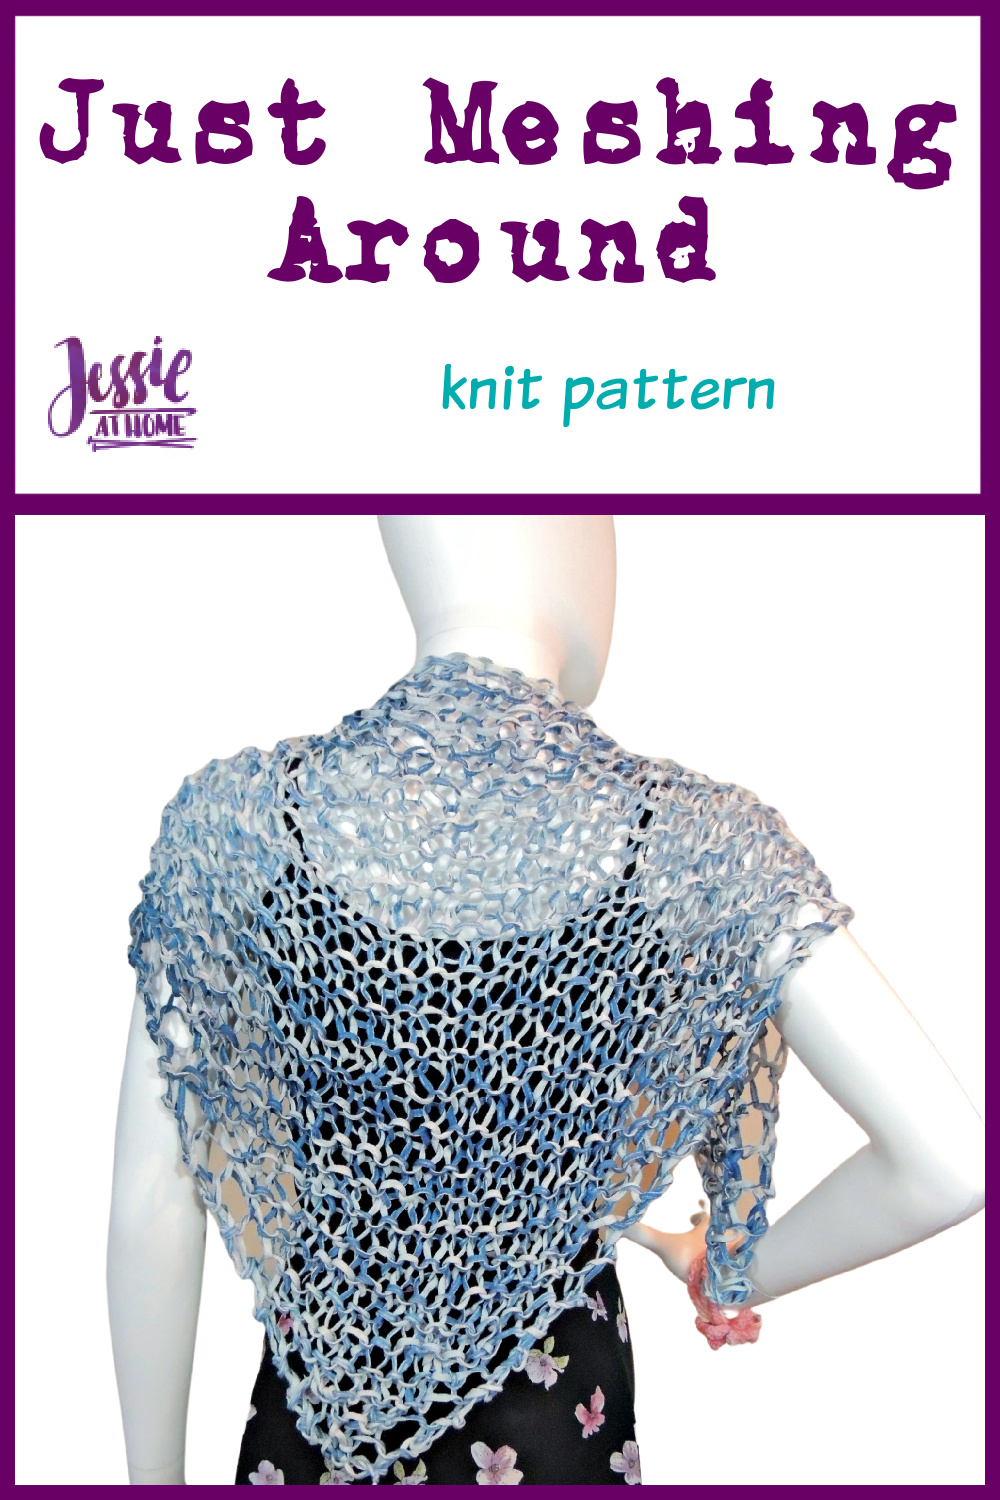 Just Meshing Around - knit pattern by Jessie At Home - Pin 1